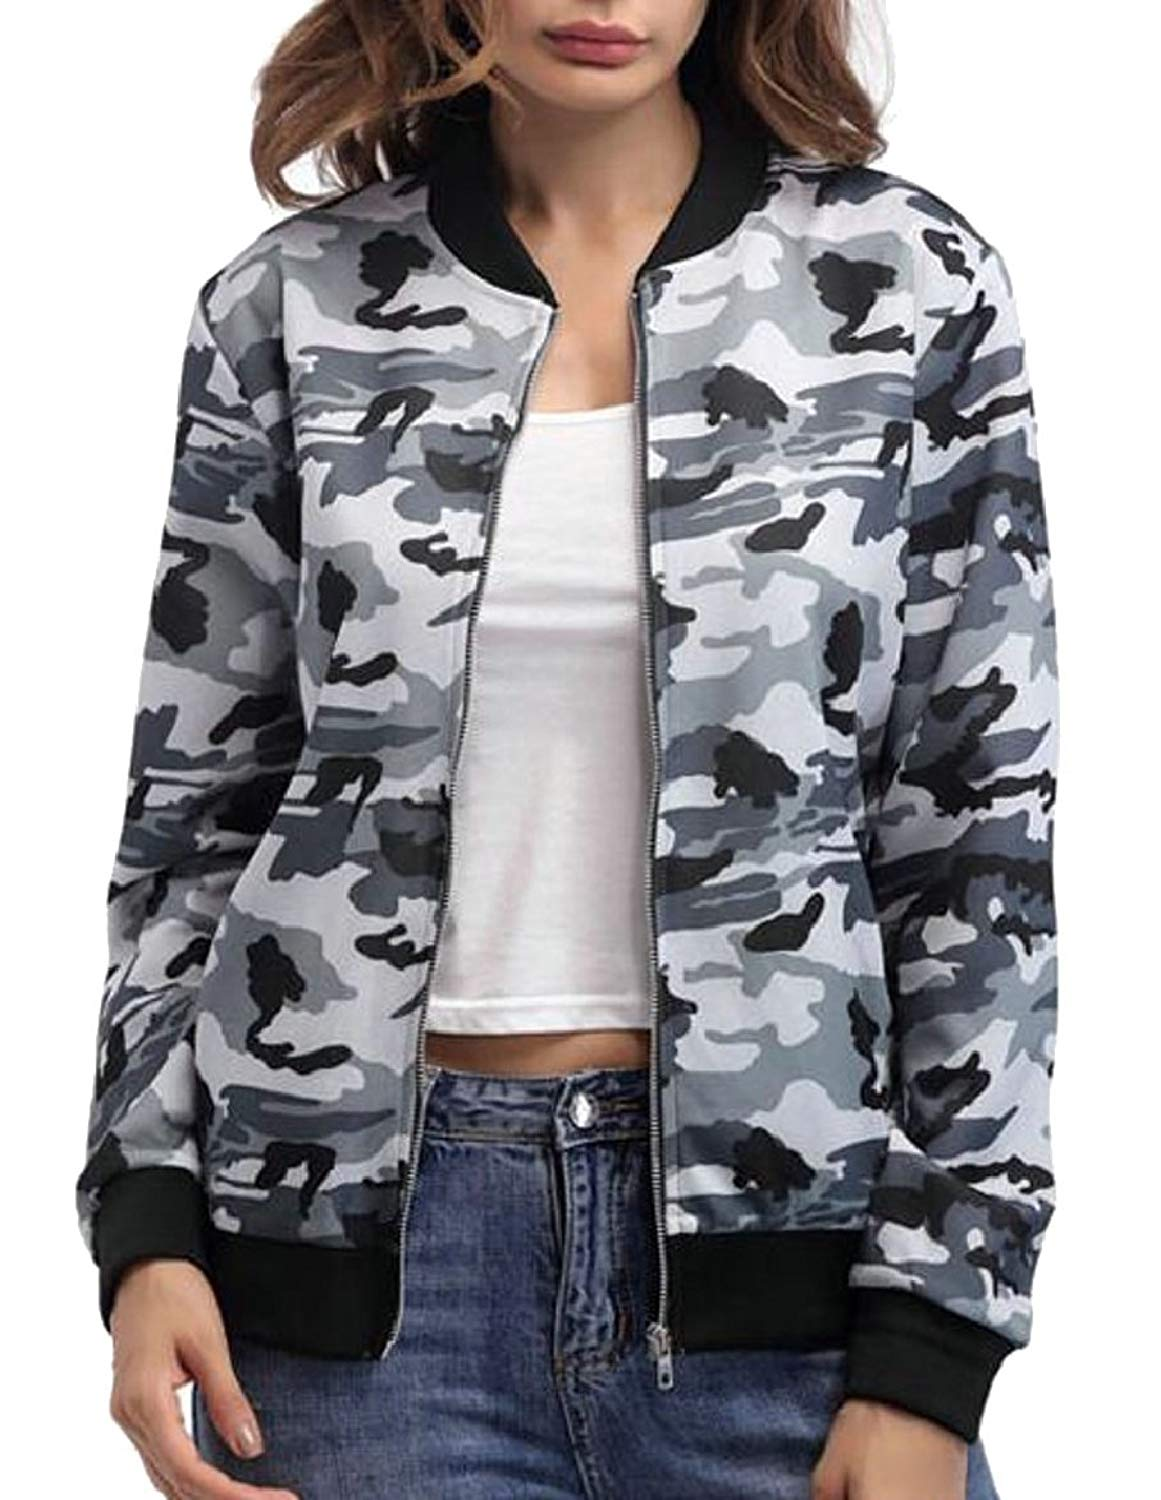 Cromoncent Womens Autumn Casual Camo Zipper Hooded Casual Jacket Coat